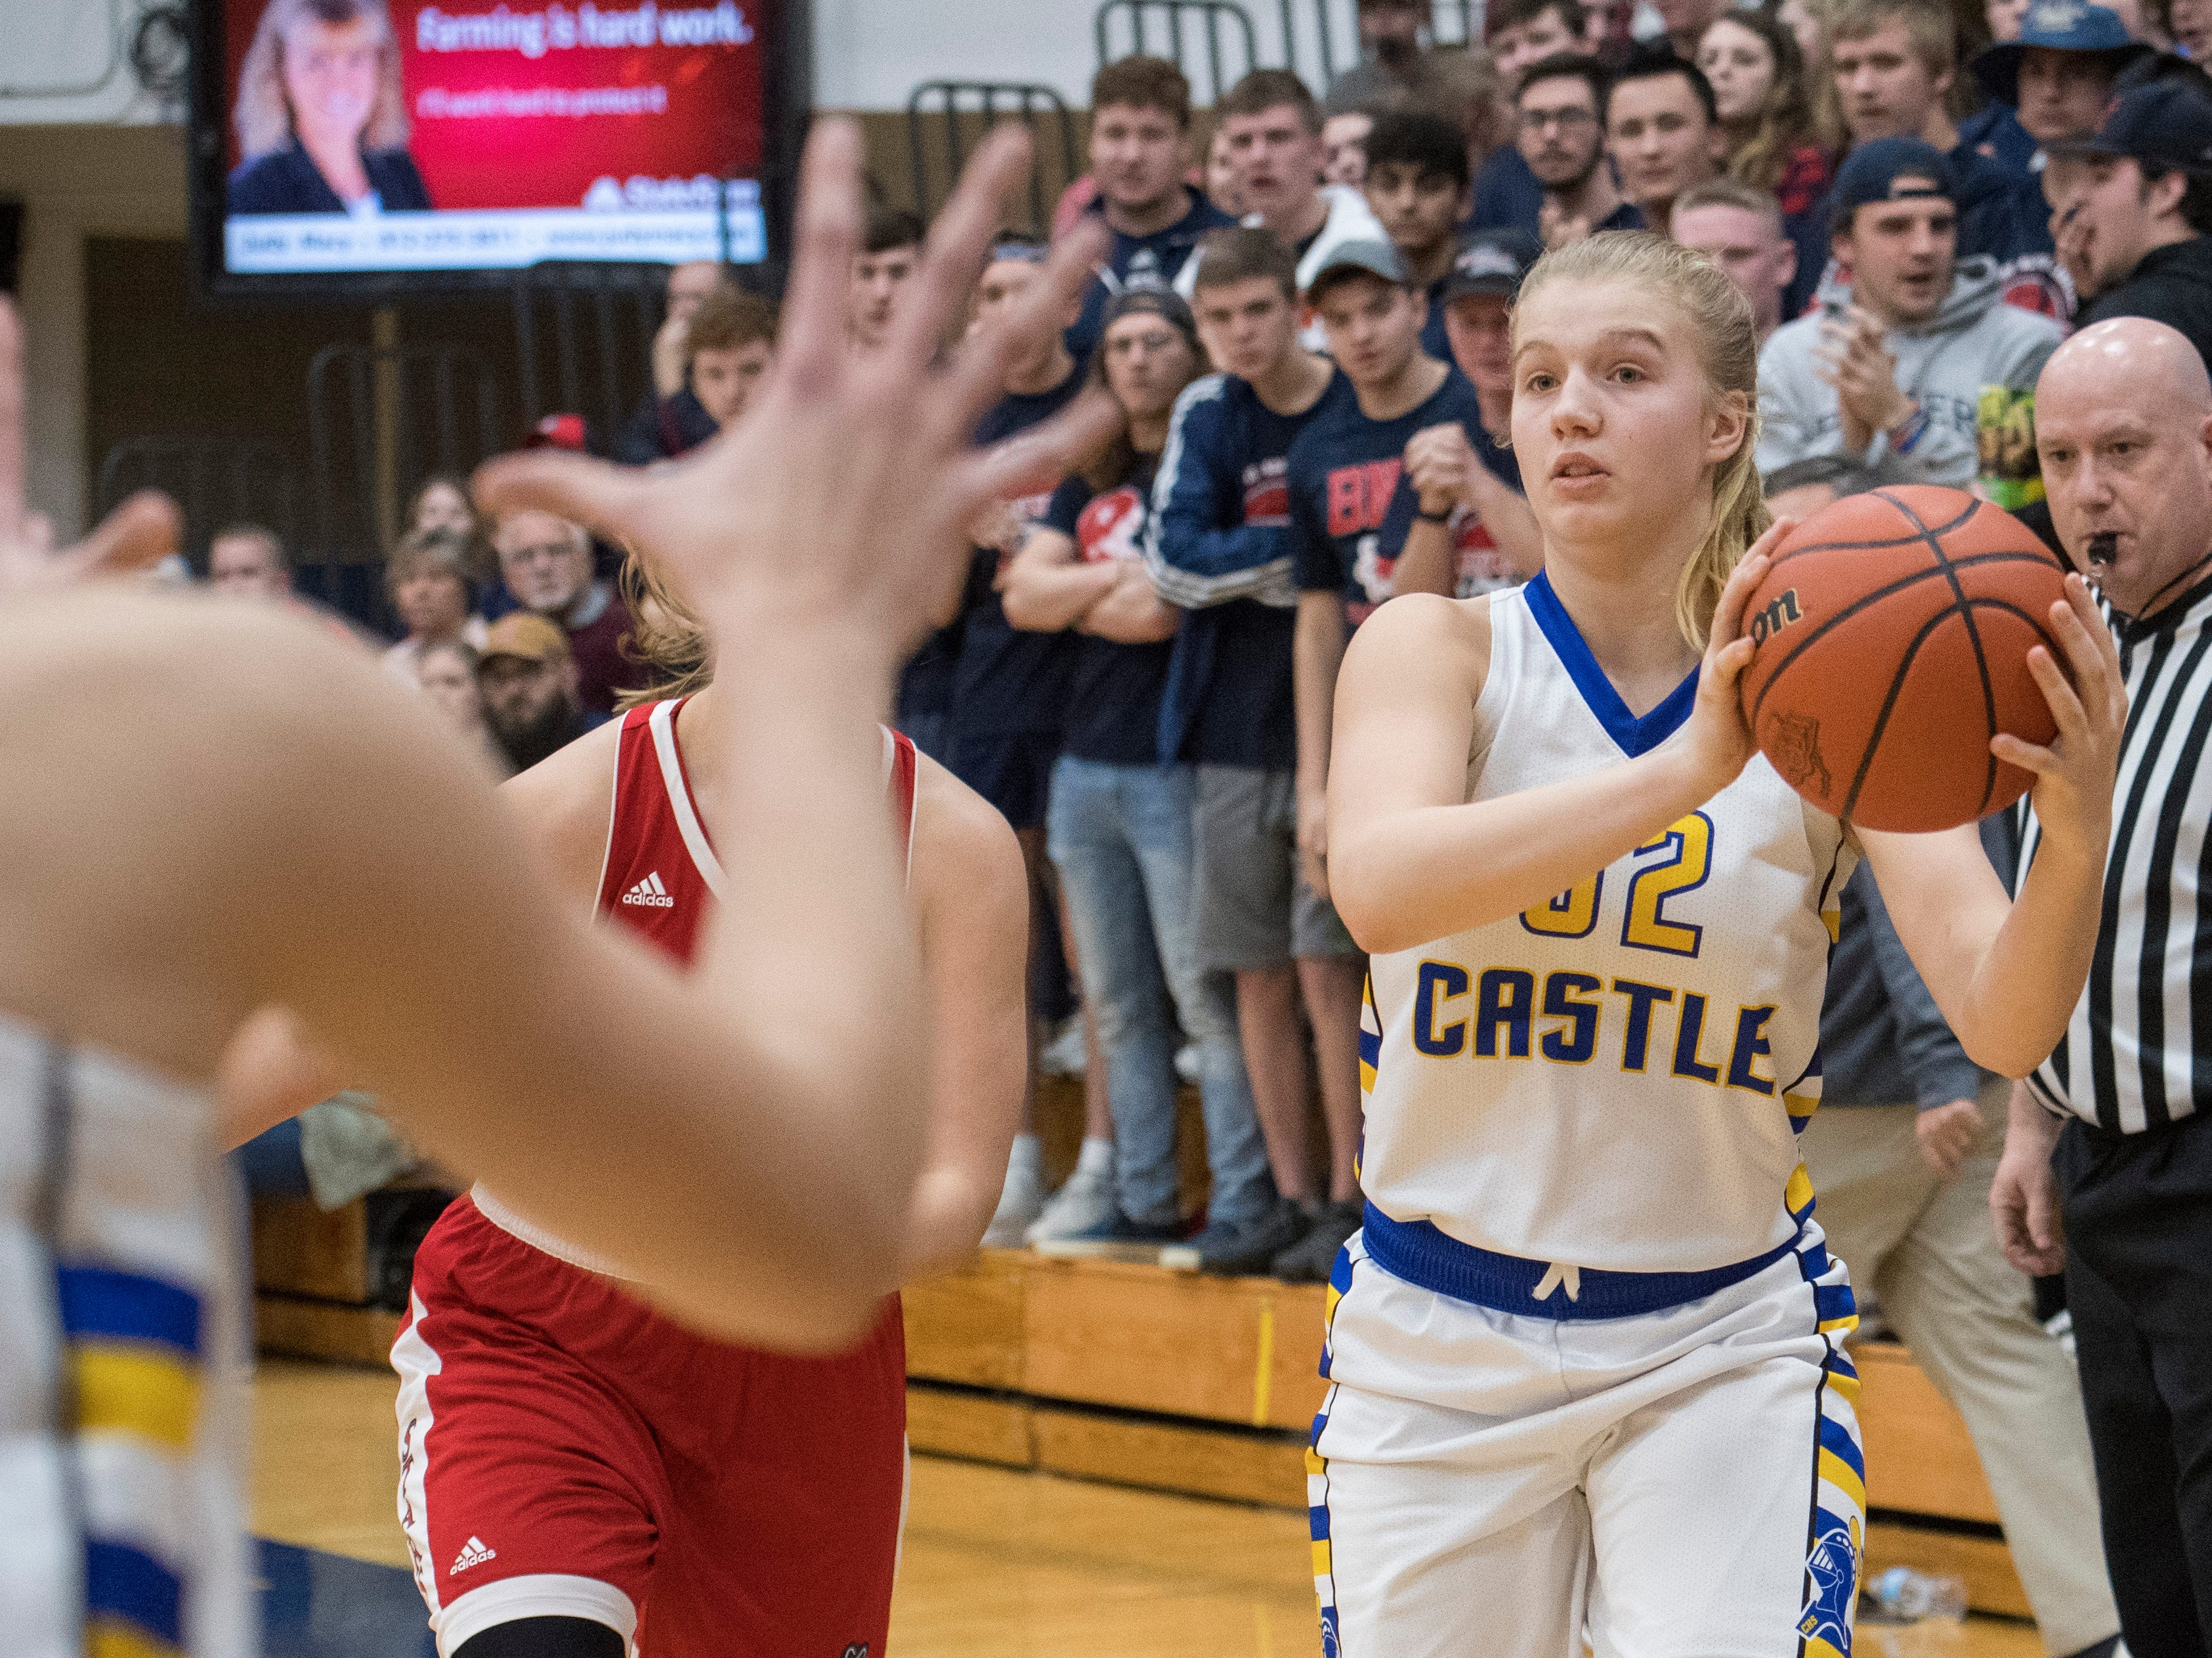 Castle's Natalie Niehaus (32) passes the ball during the I IHSAA Girls Basketball Class 4A Regional Championship game against the Bedford North Lawrence Lady Stars at the Stars Field House in Bedford, Ind. Saturday, Feb. 9, 2019.